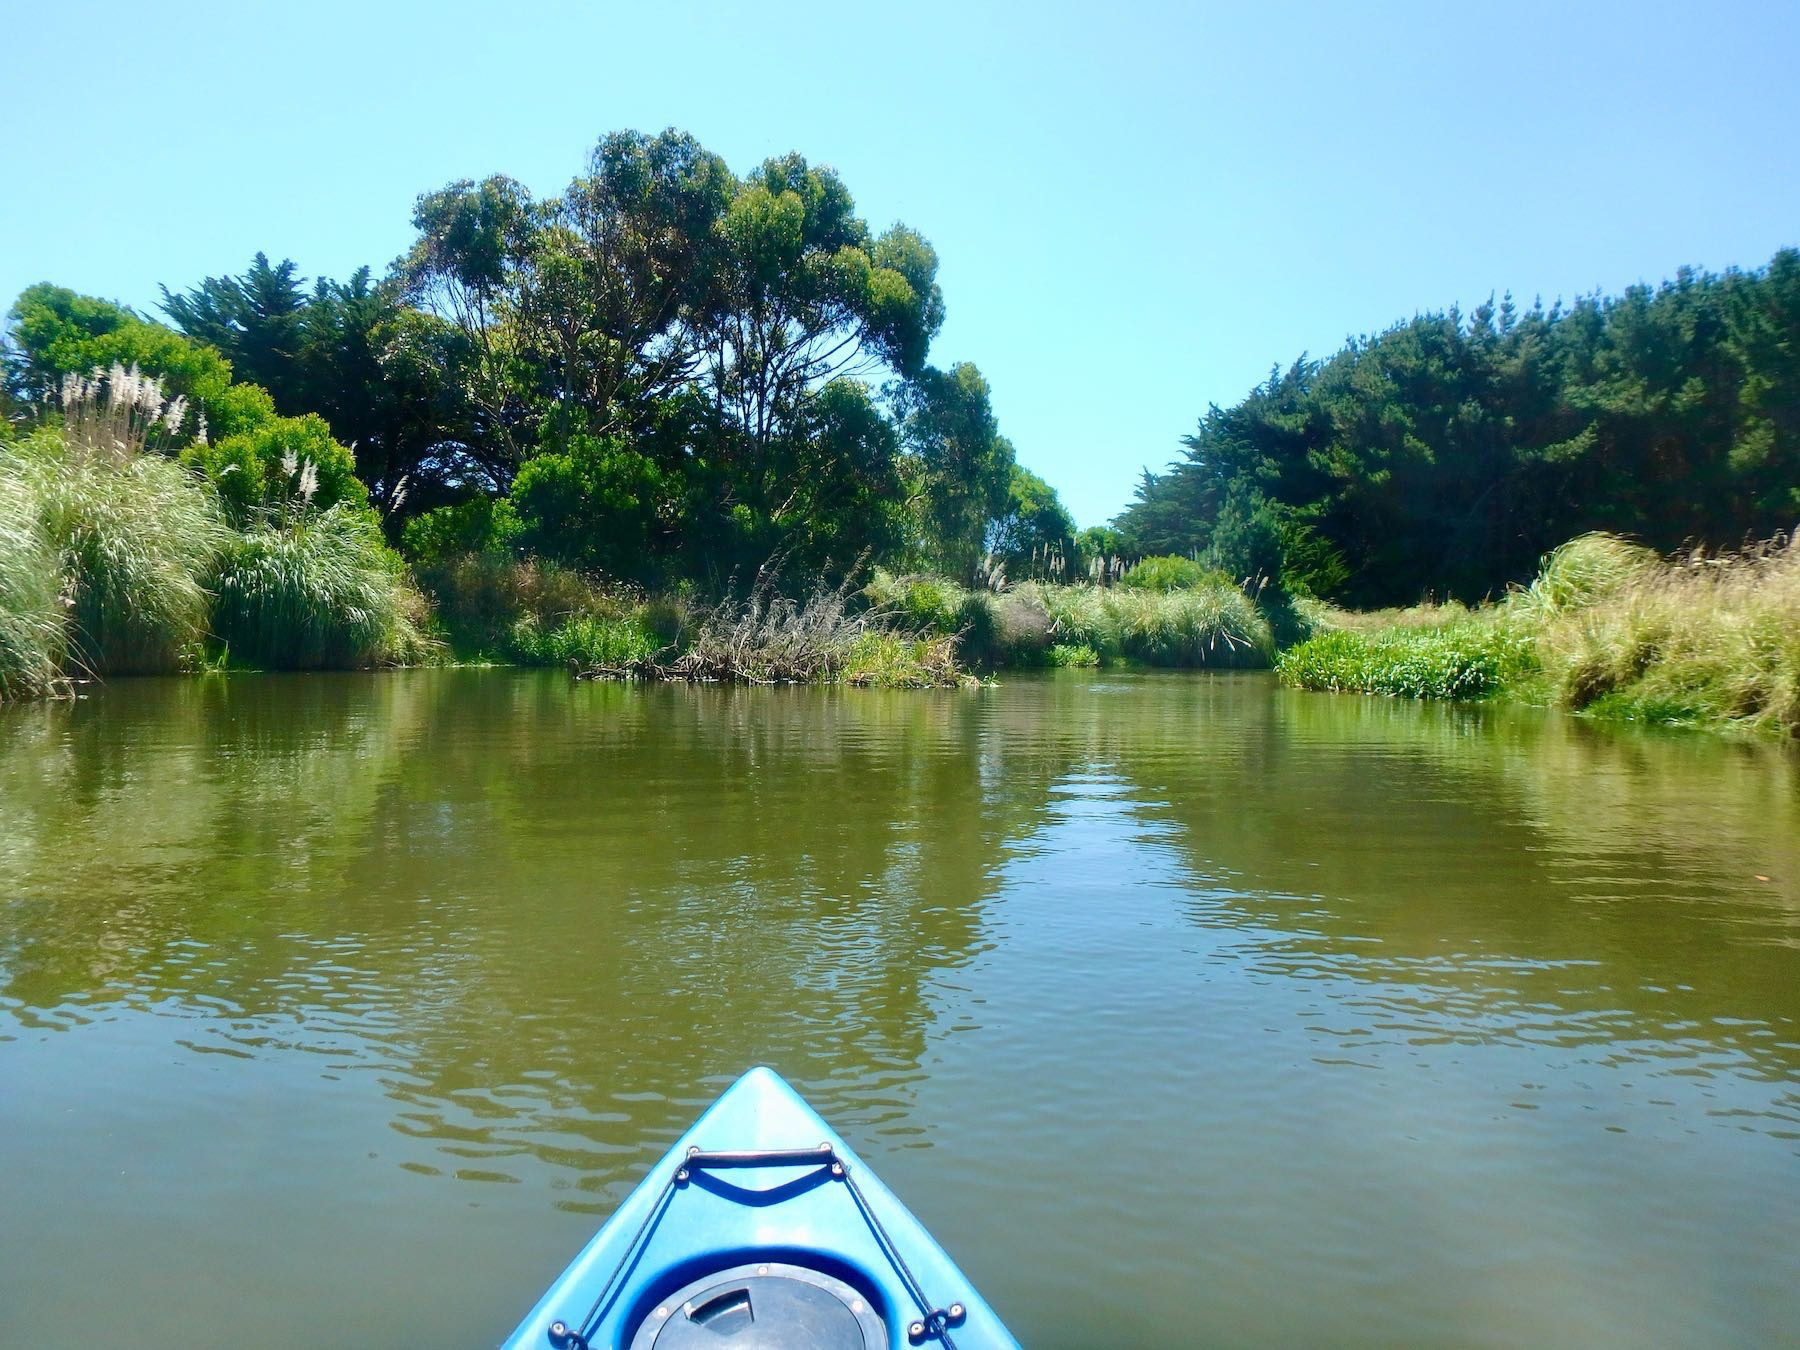 View of trees and shrube beside river from kayak.